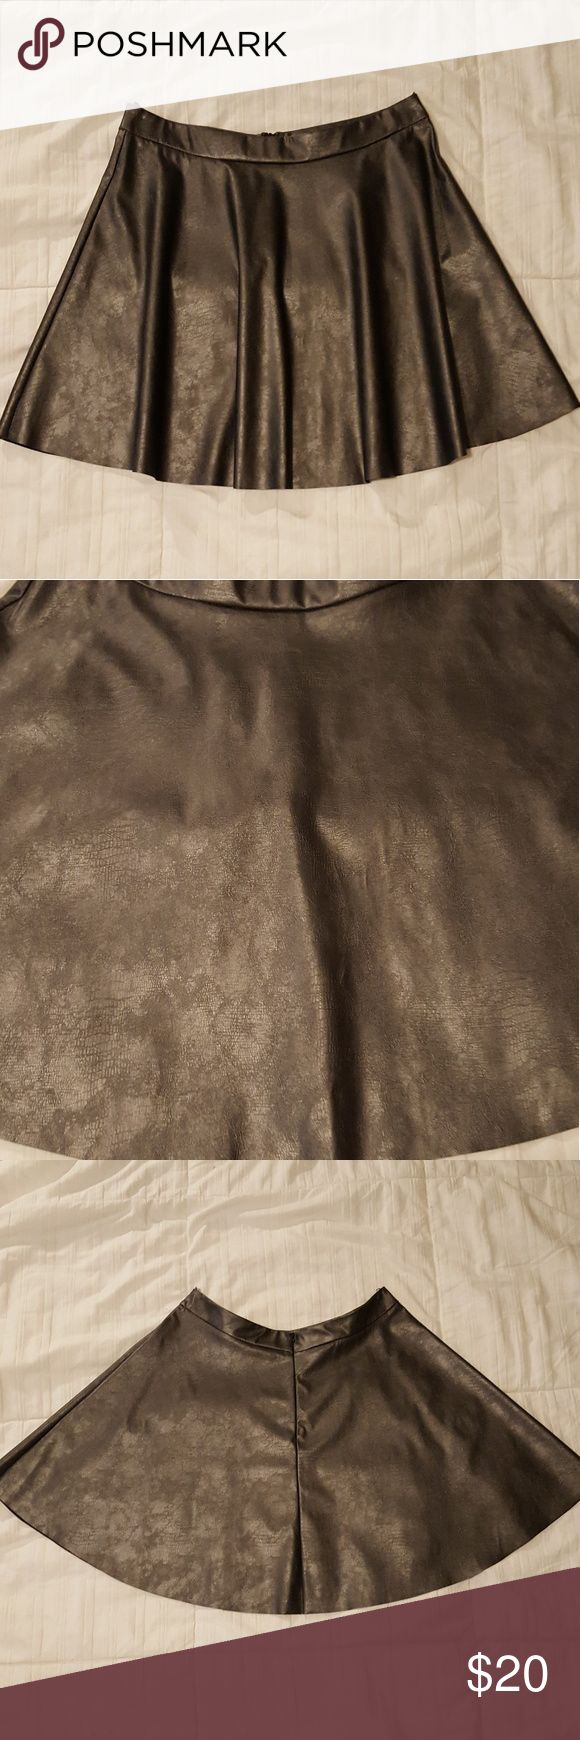 Faux leather skater skirt This skirt is gunmetal gray with an invisible zipper in the back. There is slight snake skin look to the skirt when looked at up close. Lush Skirts Mini